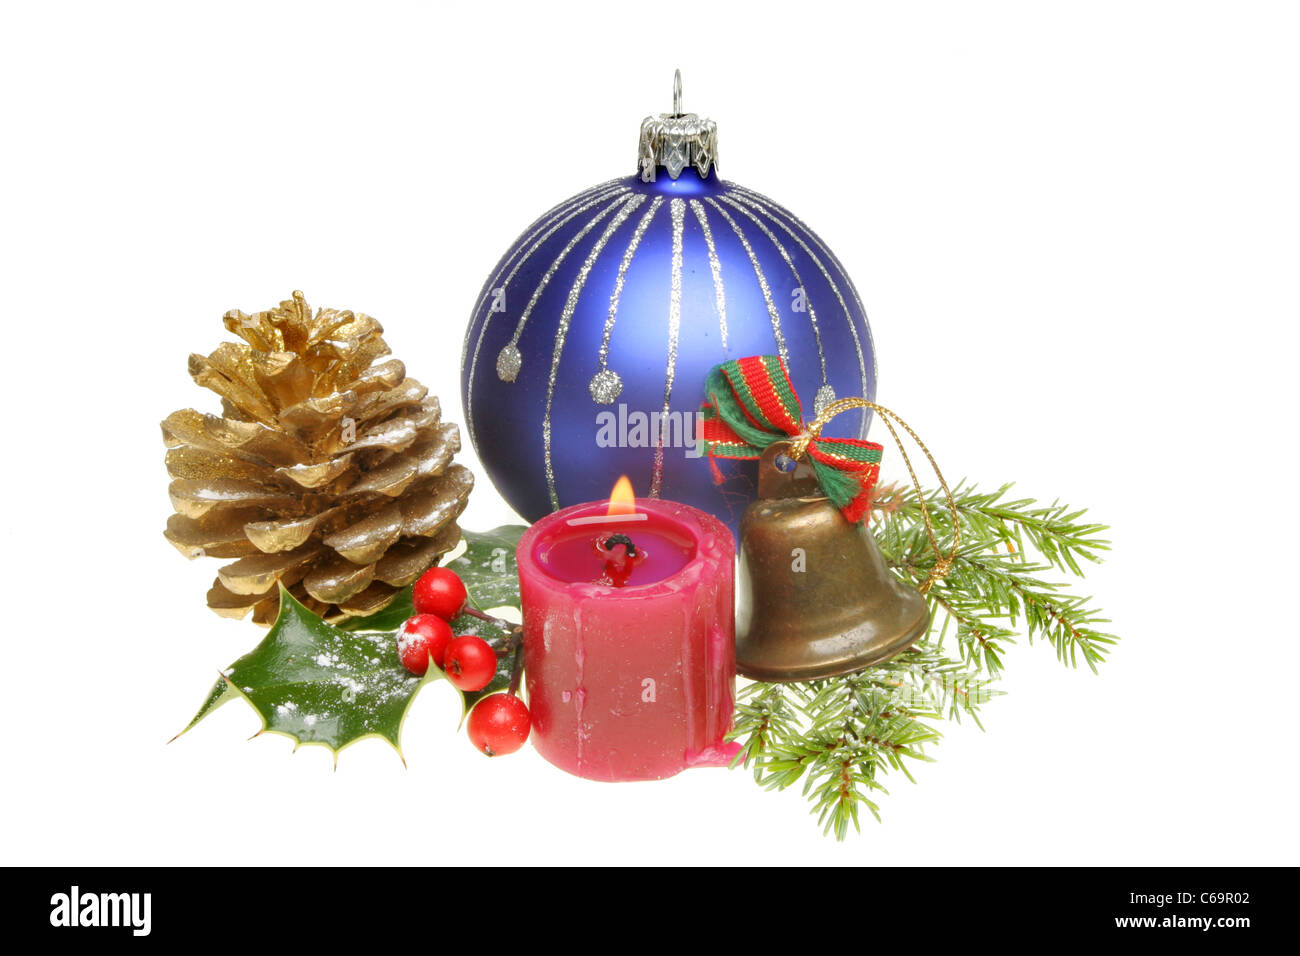 Christmas ornaments and snow dusted seasonal foliage with a burning candle - Stock Image